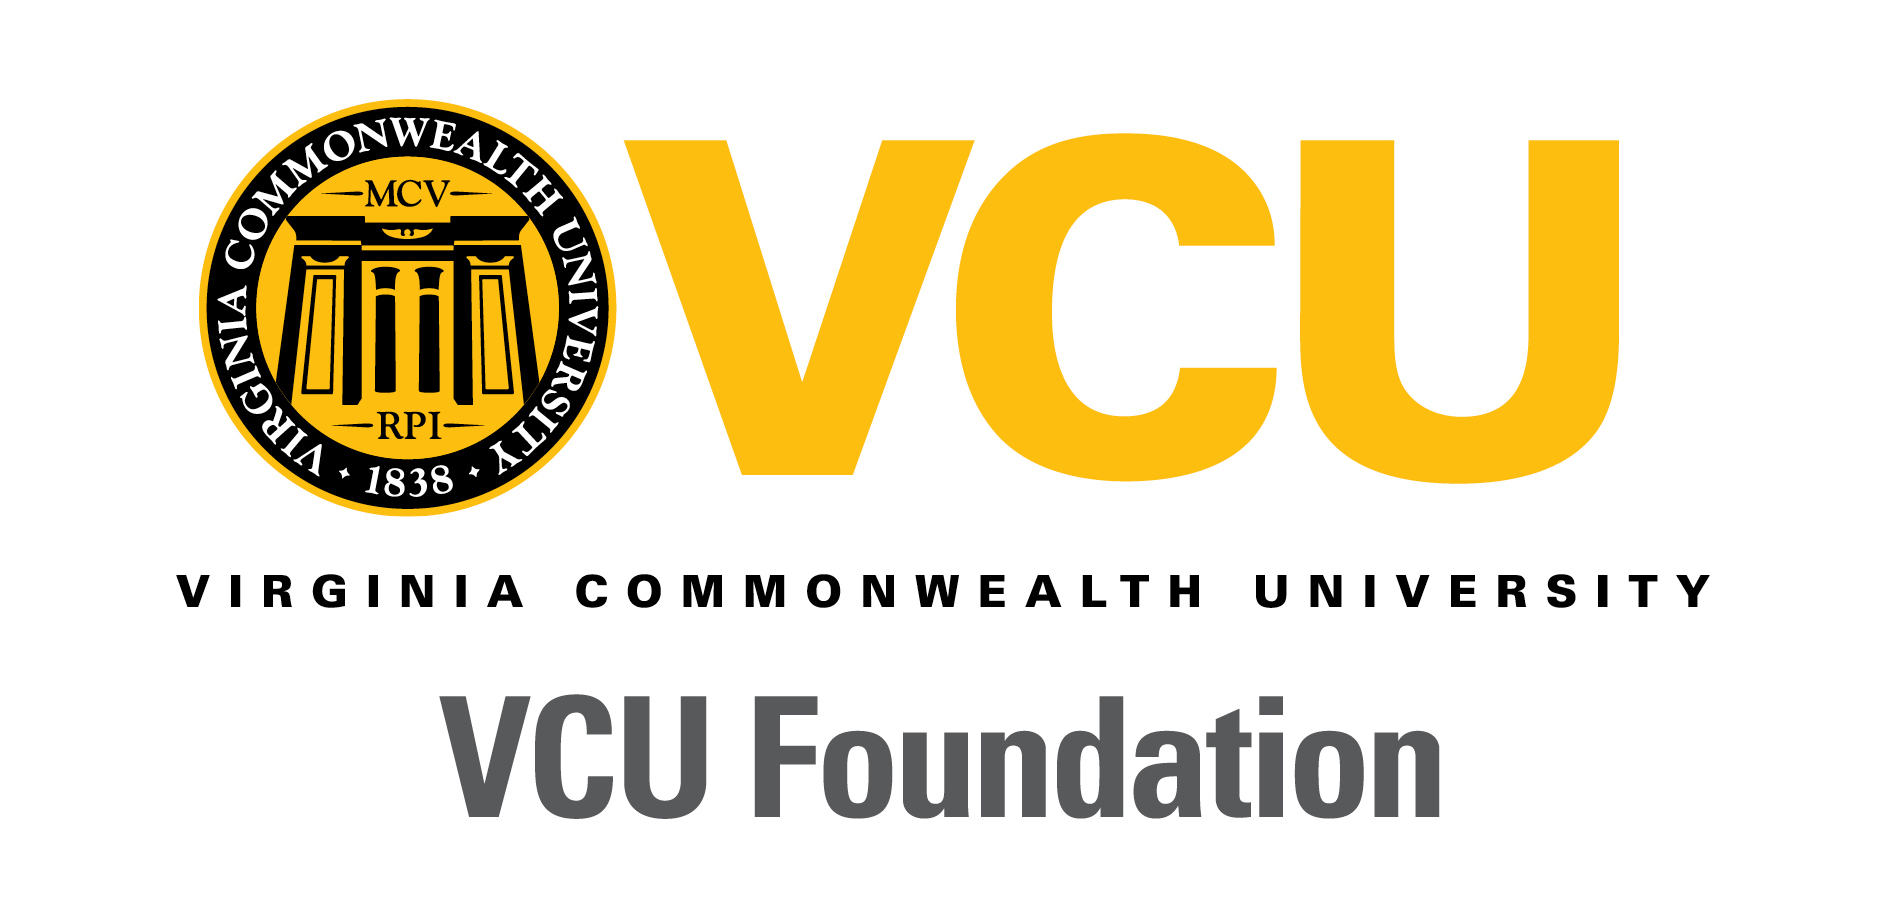 bm_VCU_Foundation_st_4c - Copy.jpg